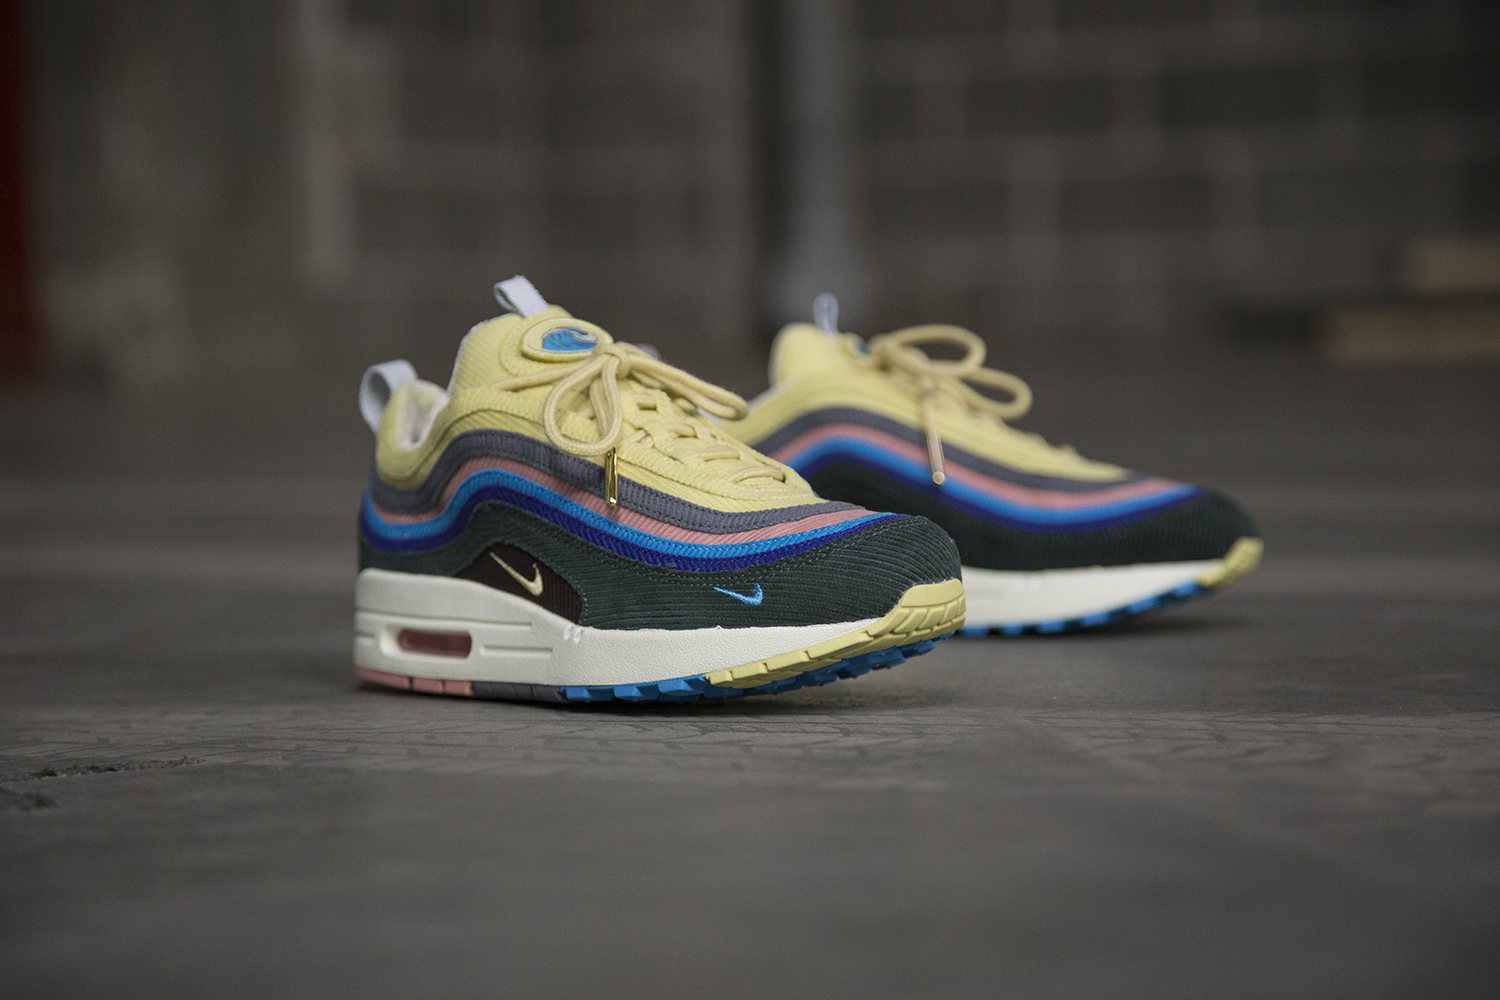 5eee027788 Unquestionably one of the most anticipated releases ahead of Air Max Day  this year is Sean Wotherspoon's winning entry to 2017's 'Vote Forward'  competition, ...